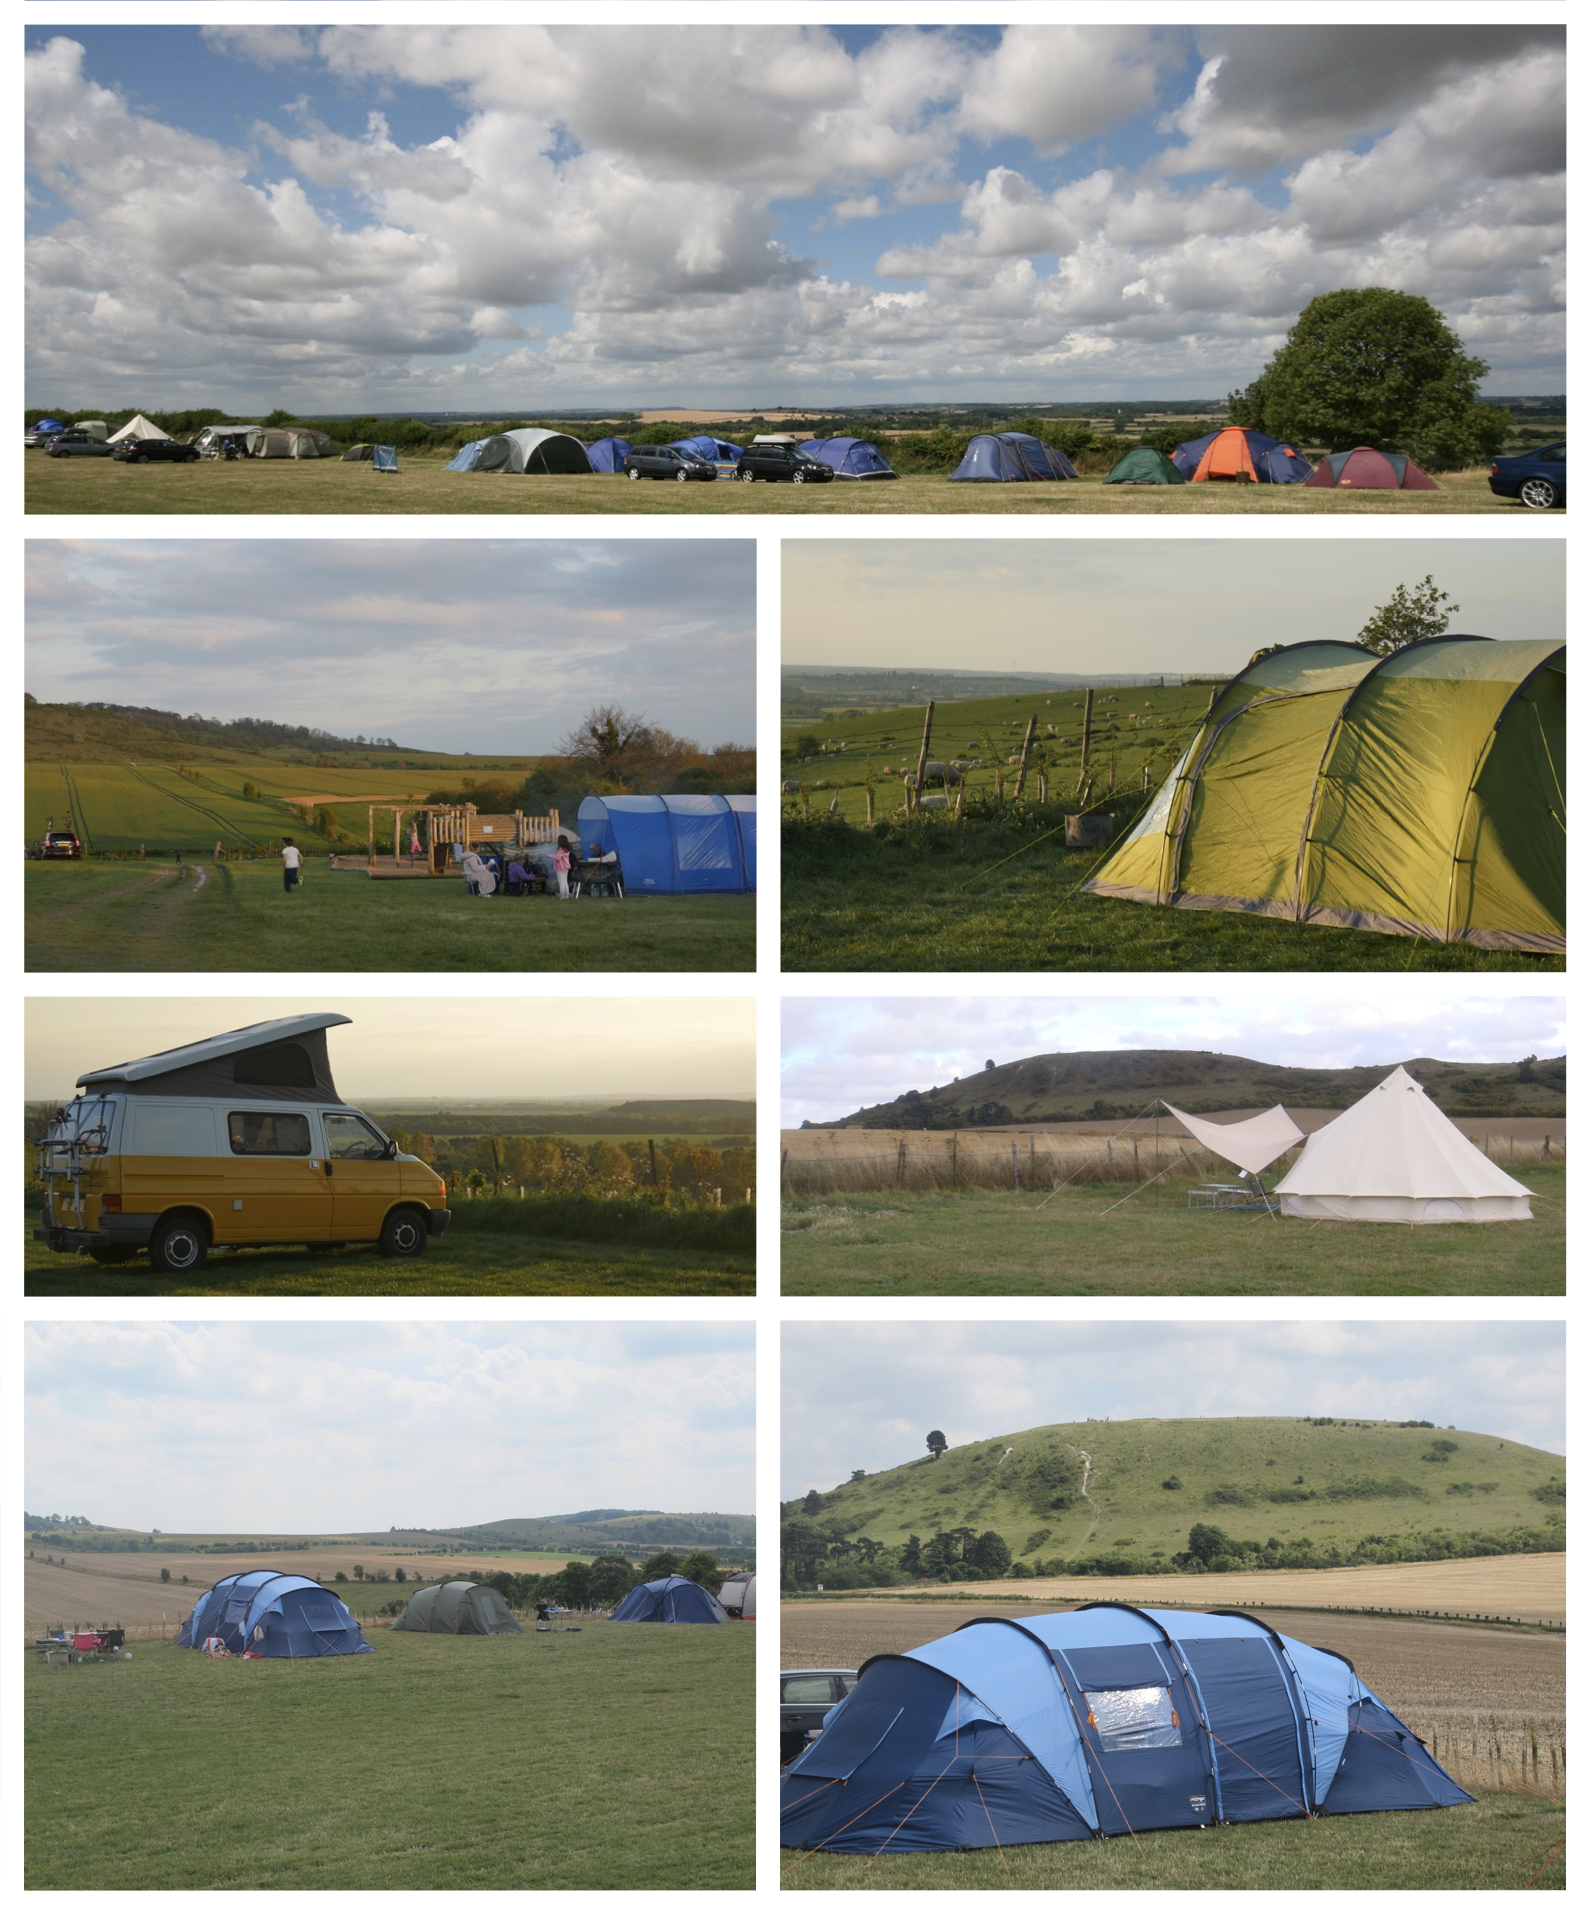 u2022Tents are allowed to pitch almost anywhere on site. u2022Whilst we donu0027t have electric hook-ups available for tents there are power-points located in the ... & Town Farm Camping